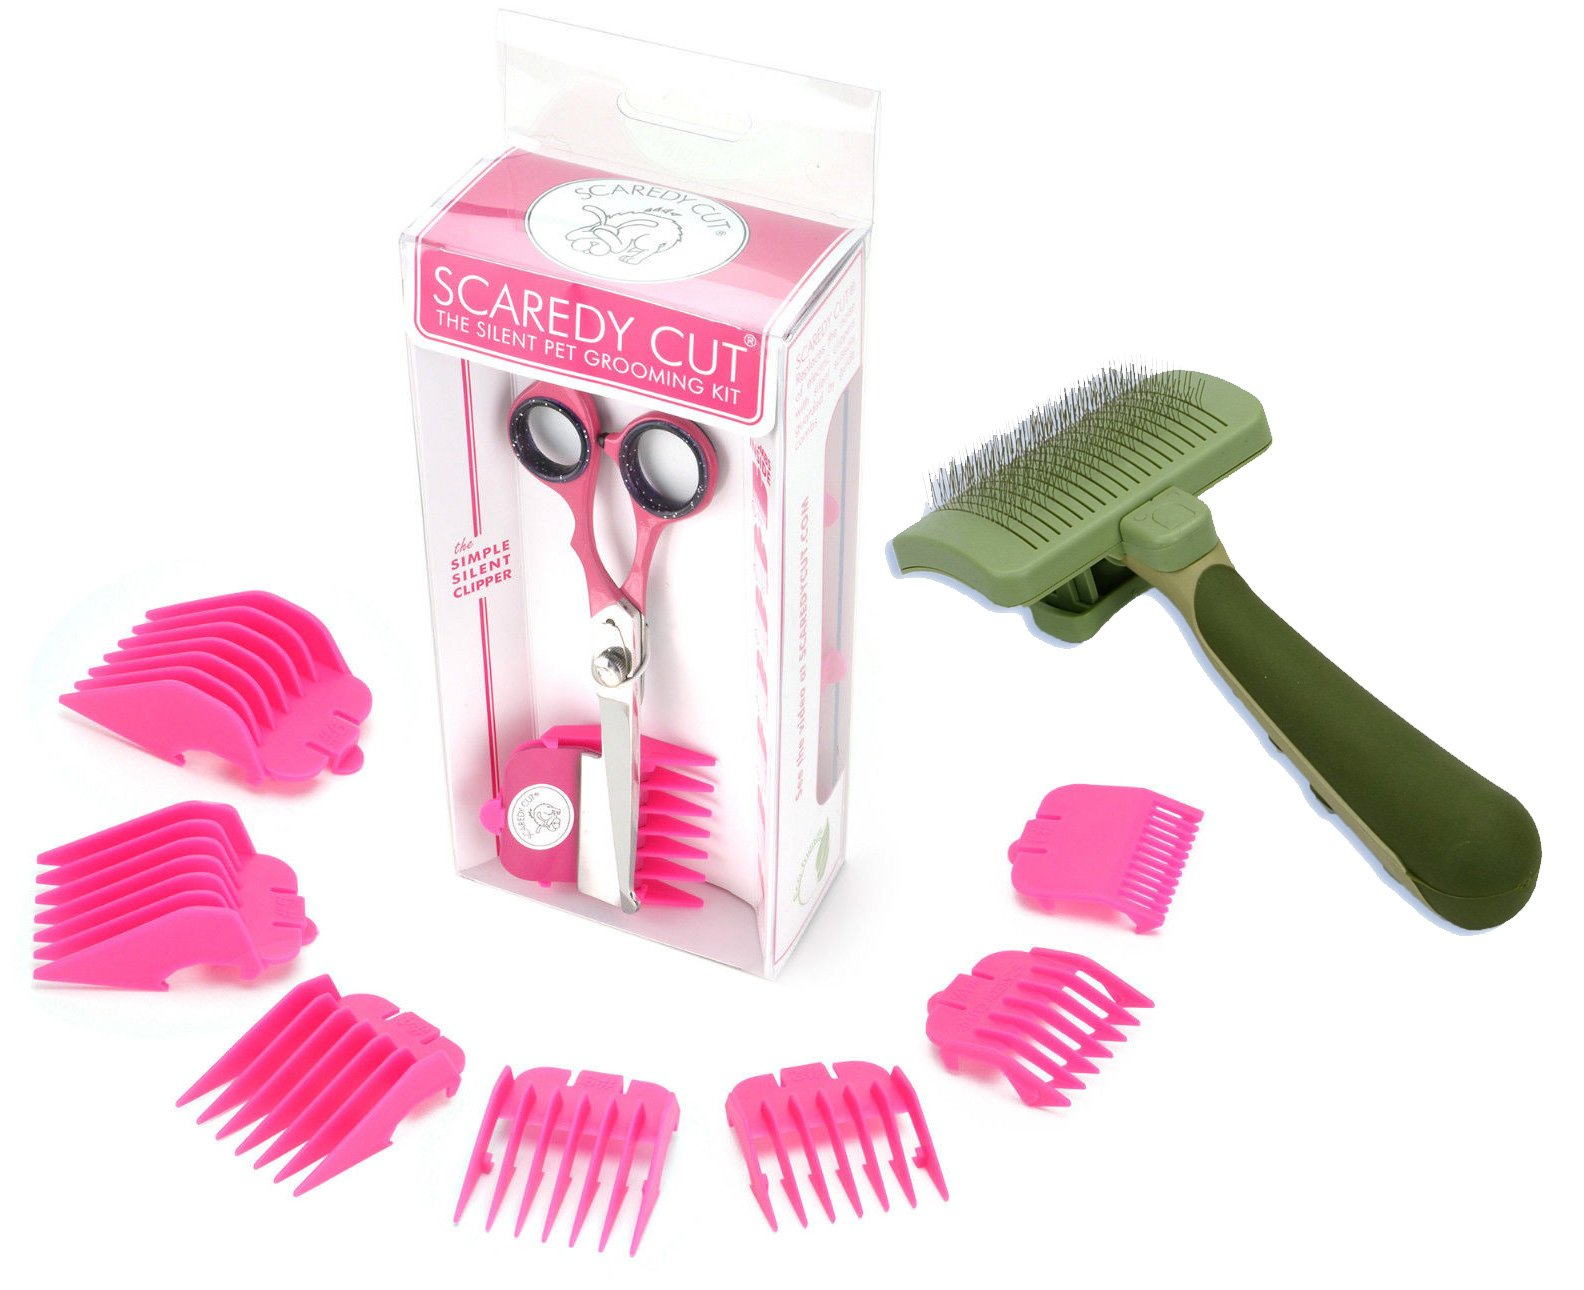 Scaredy Cut Silent Pet Clipper, PINK with Safari Self-Cleaning Cat Slicker Brush by Scaredy Cut